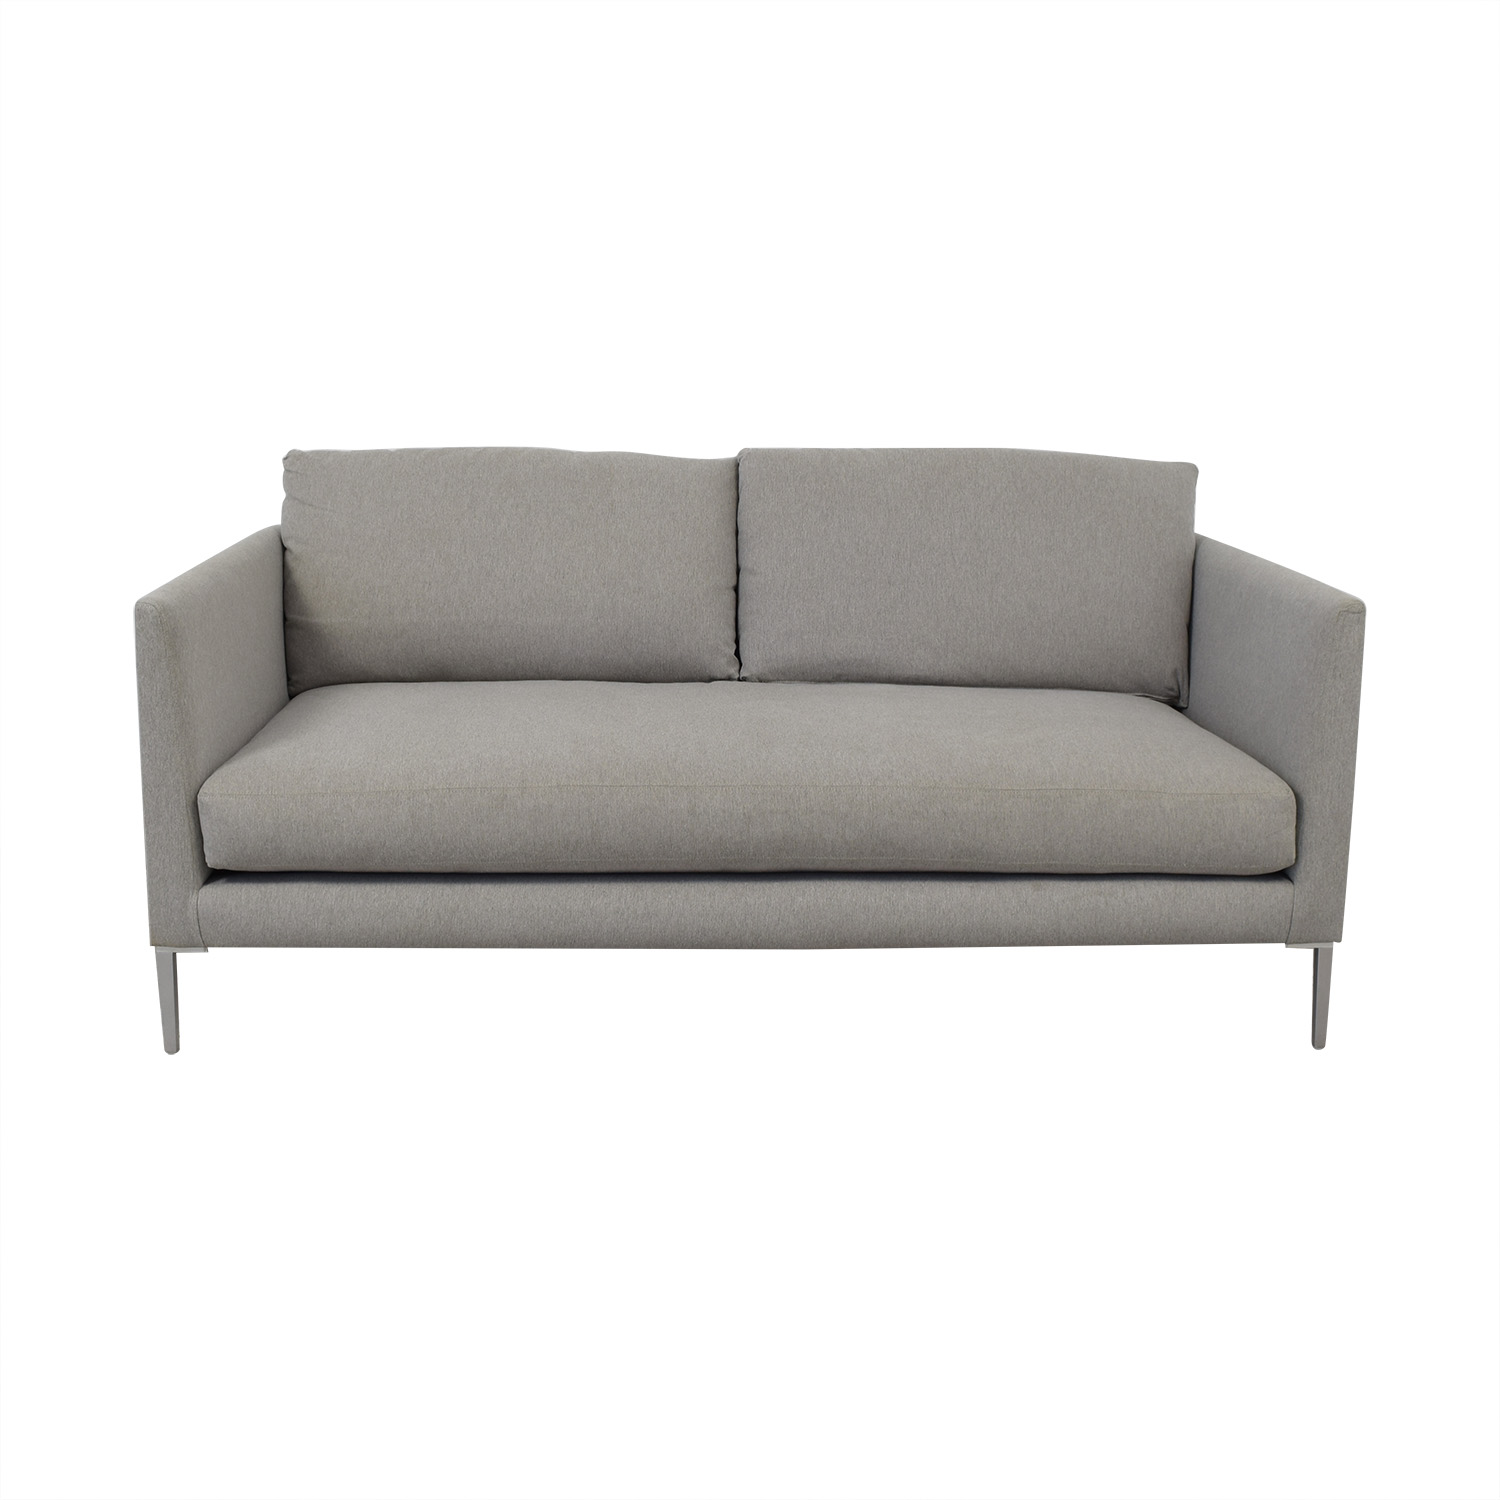 shop Room & Board Room & Board Janus Sofa online